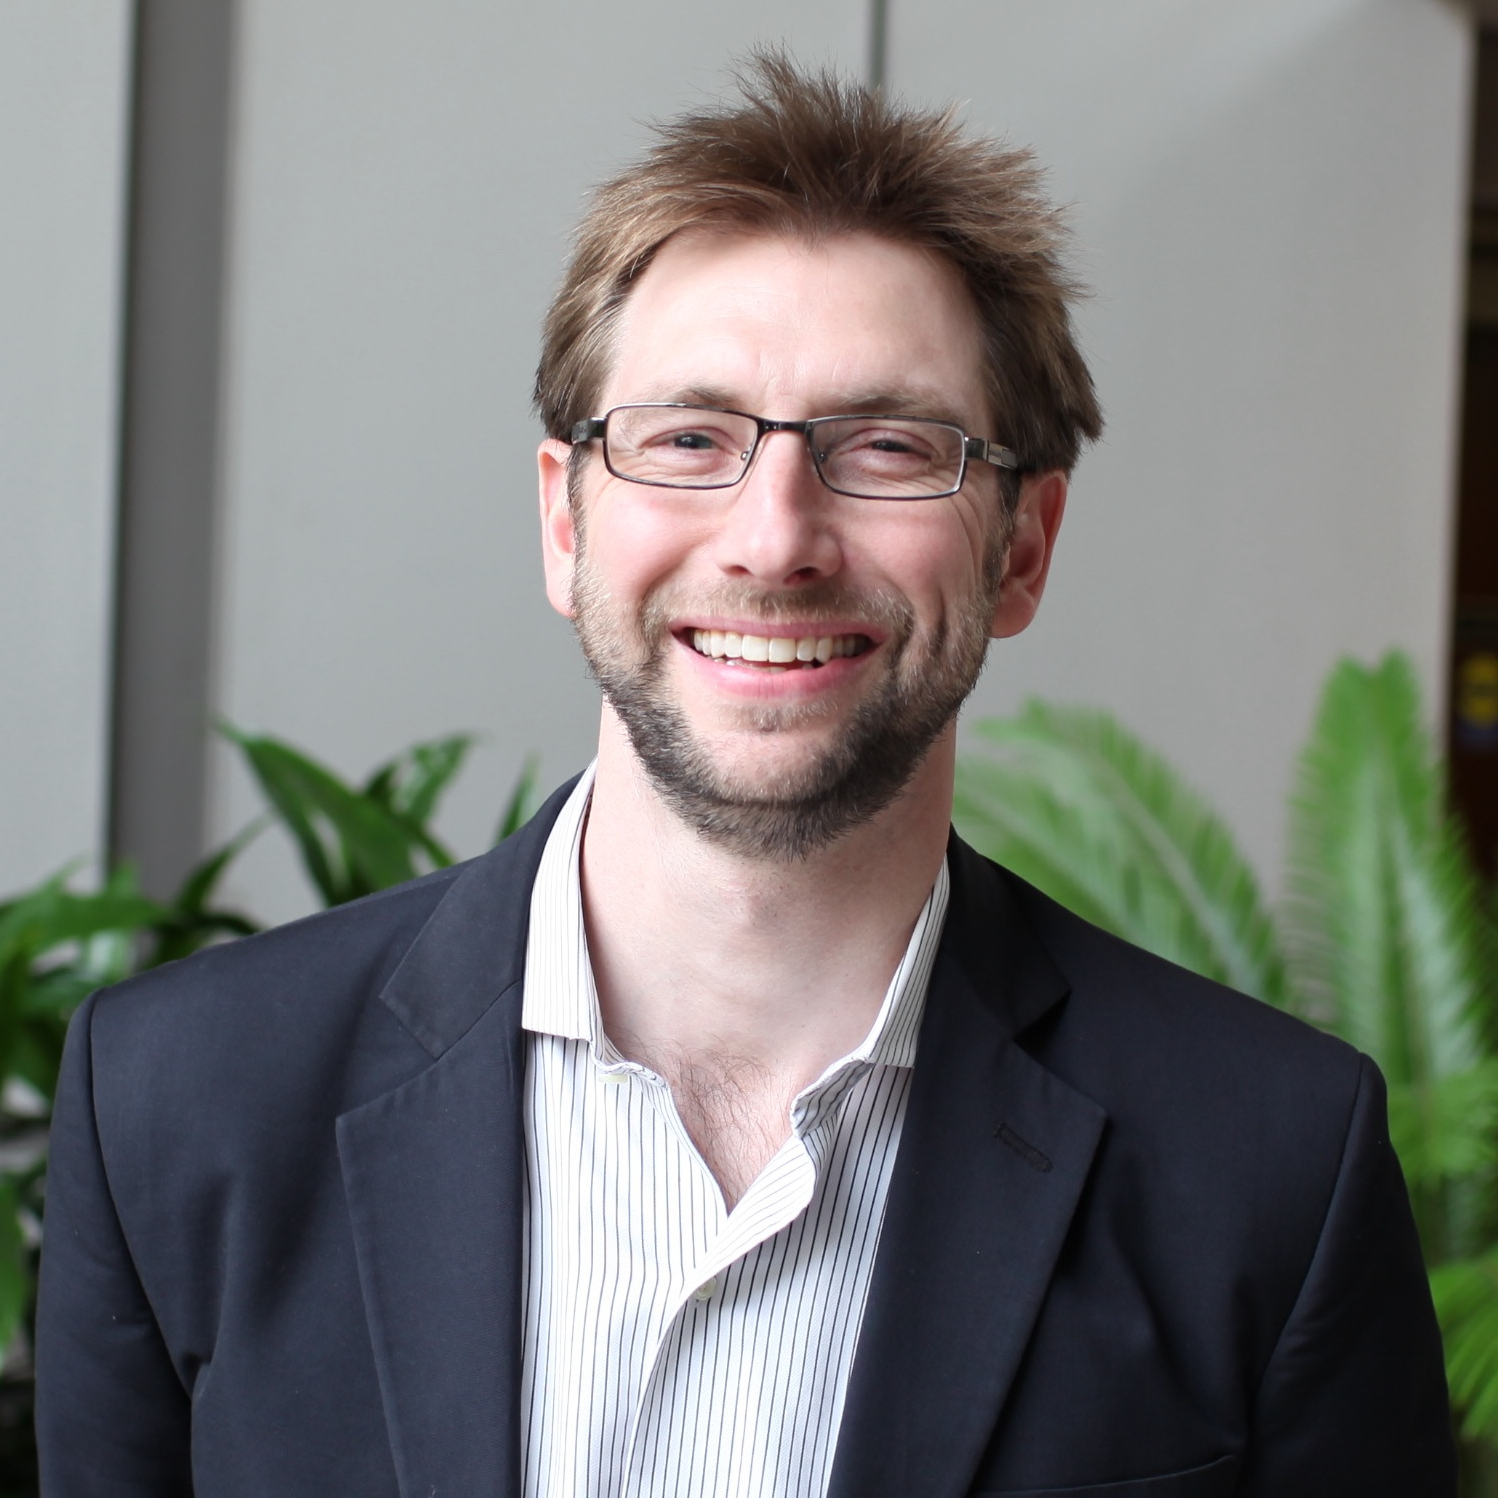 Jeb Ory, CEO, and co-founder of DC-based Phone2Action